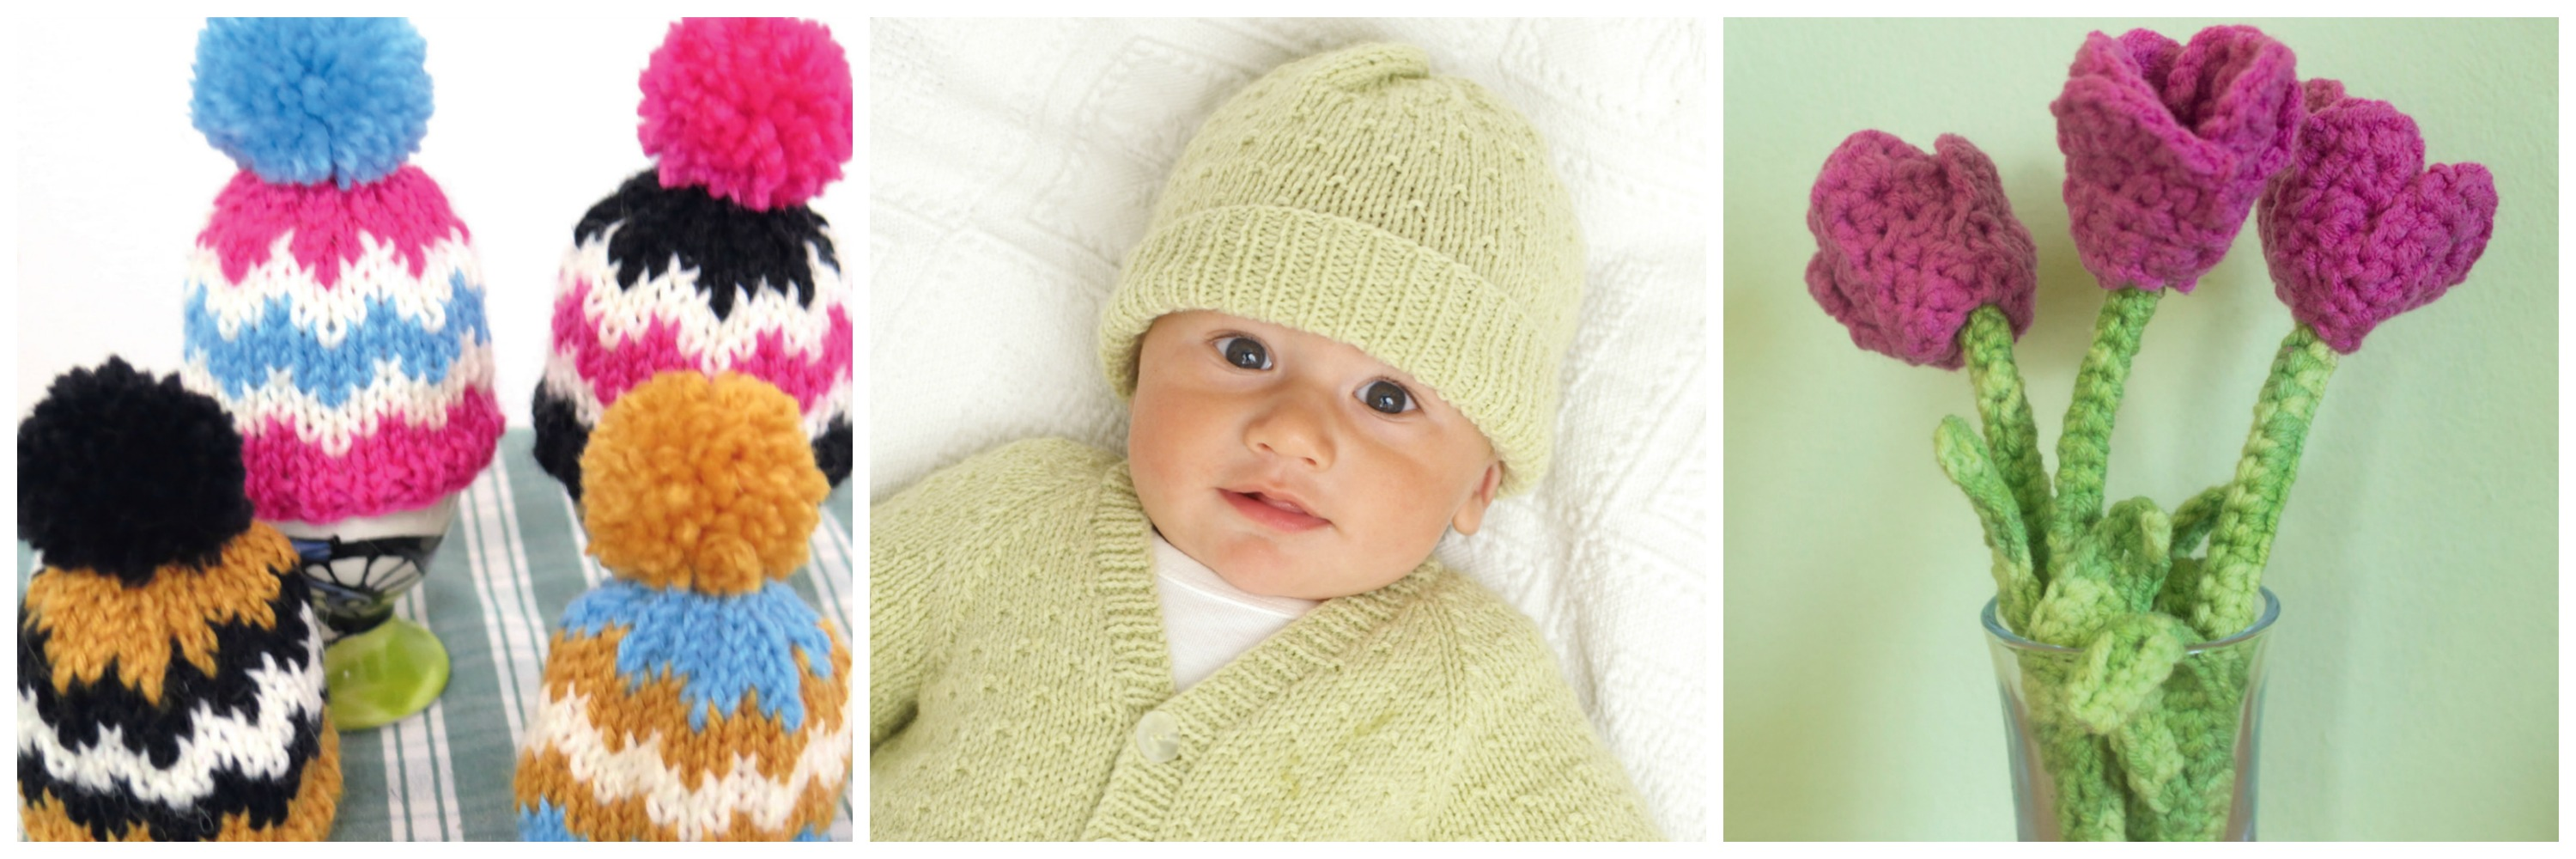 Bonnie Babies Knitting Patterns : Events